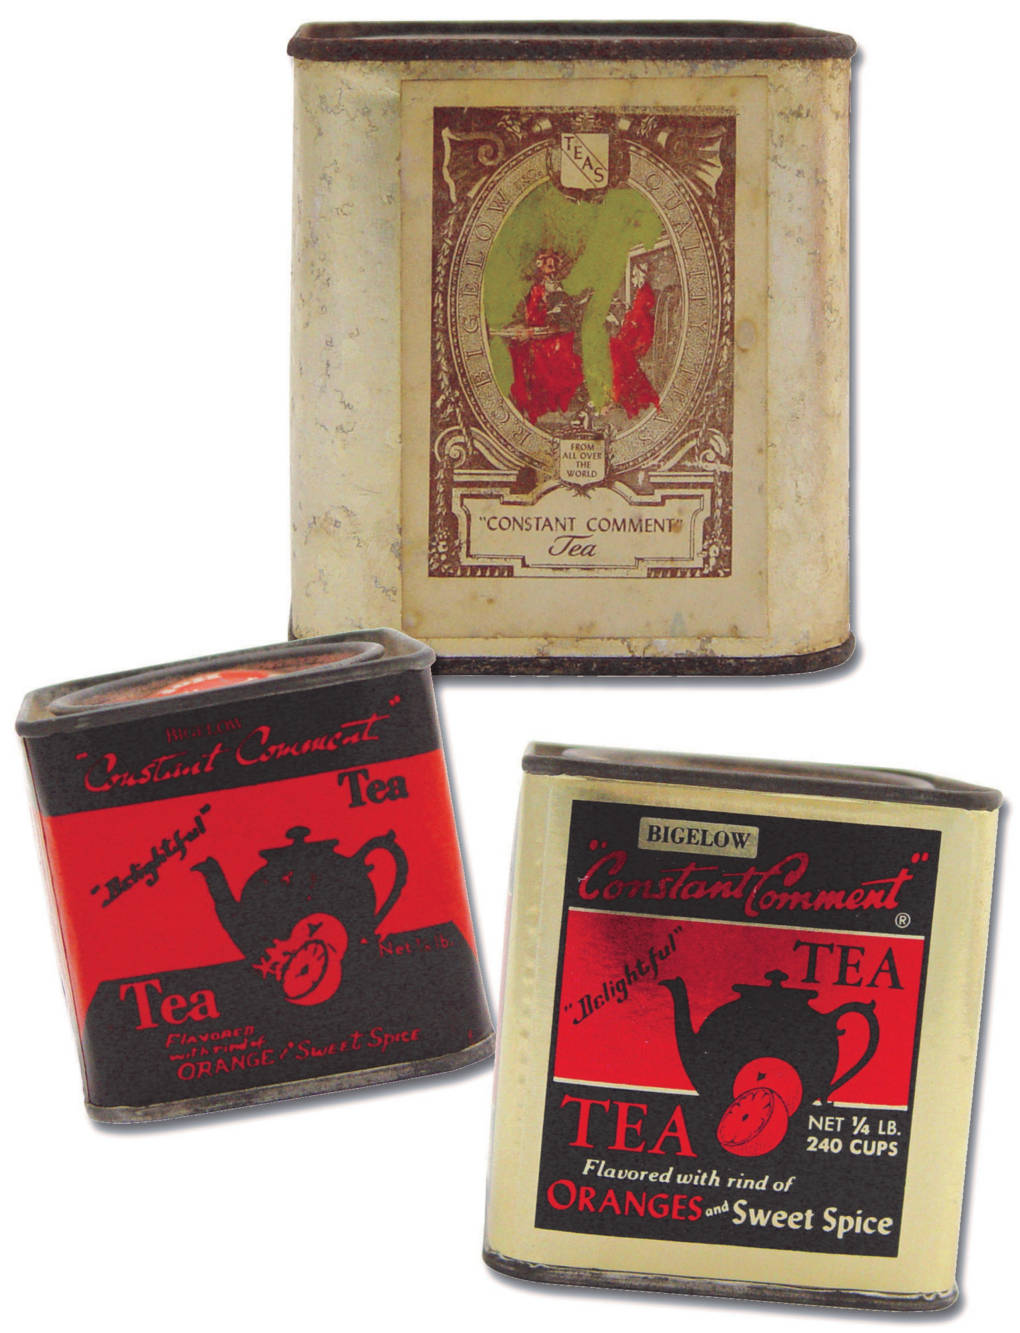 Constant Comment was first sold in tins wrapped in gold foil. The family could only afford single color labels for the first tea tins. So David Sr. and his son, David Jr., would hand-paint the red ladies on the labels.